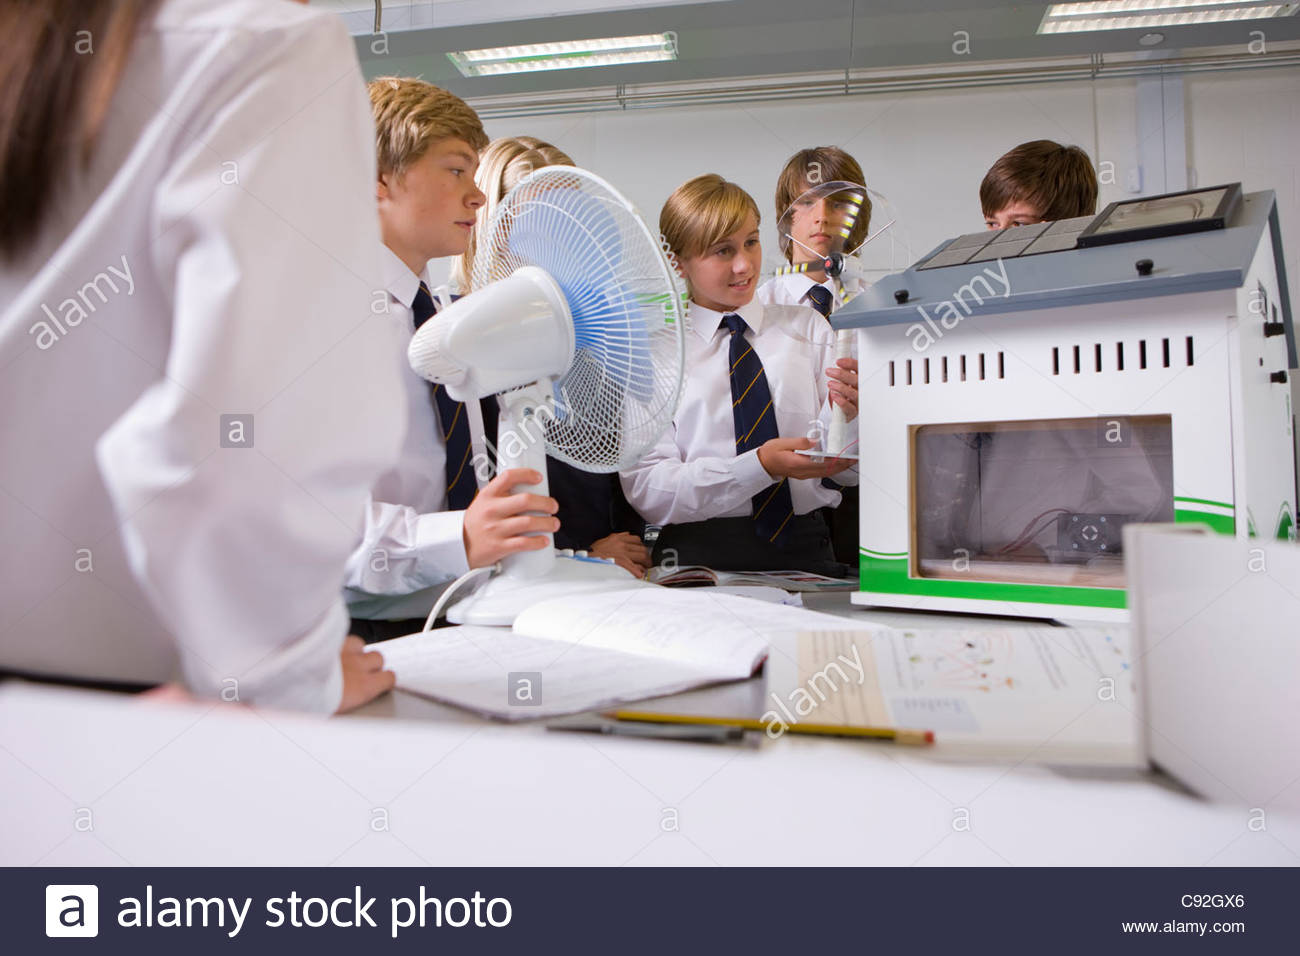 Students experimenting with model wind turbine in science class - Stock Image